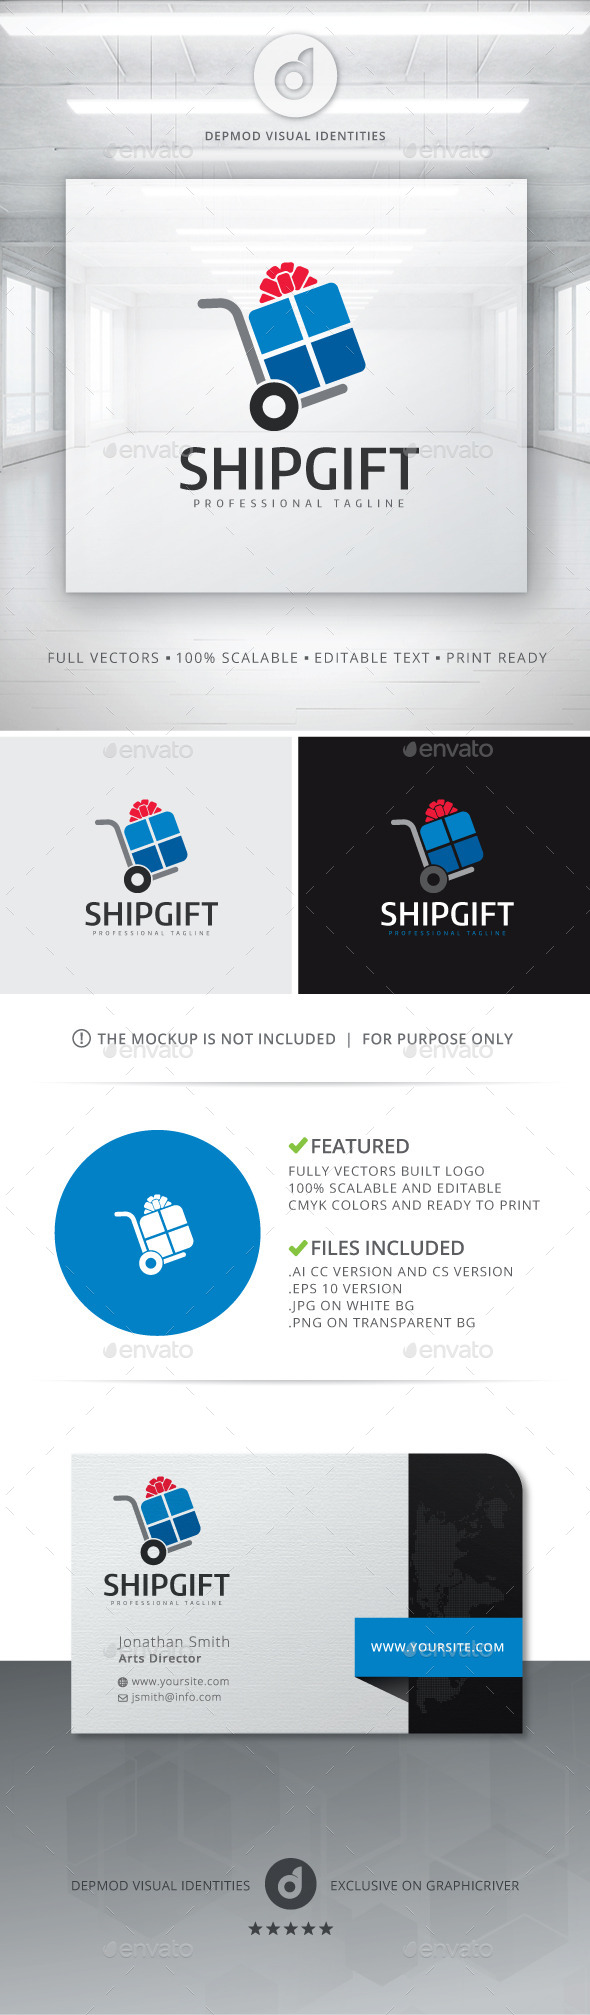 GraphicRiver Ship Gift Logo 10822945